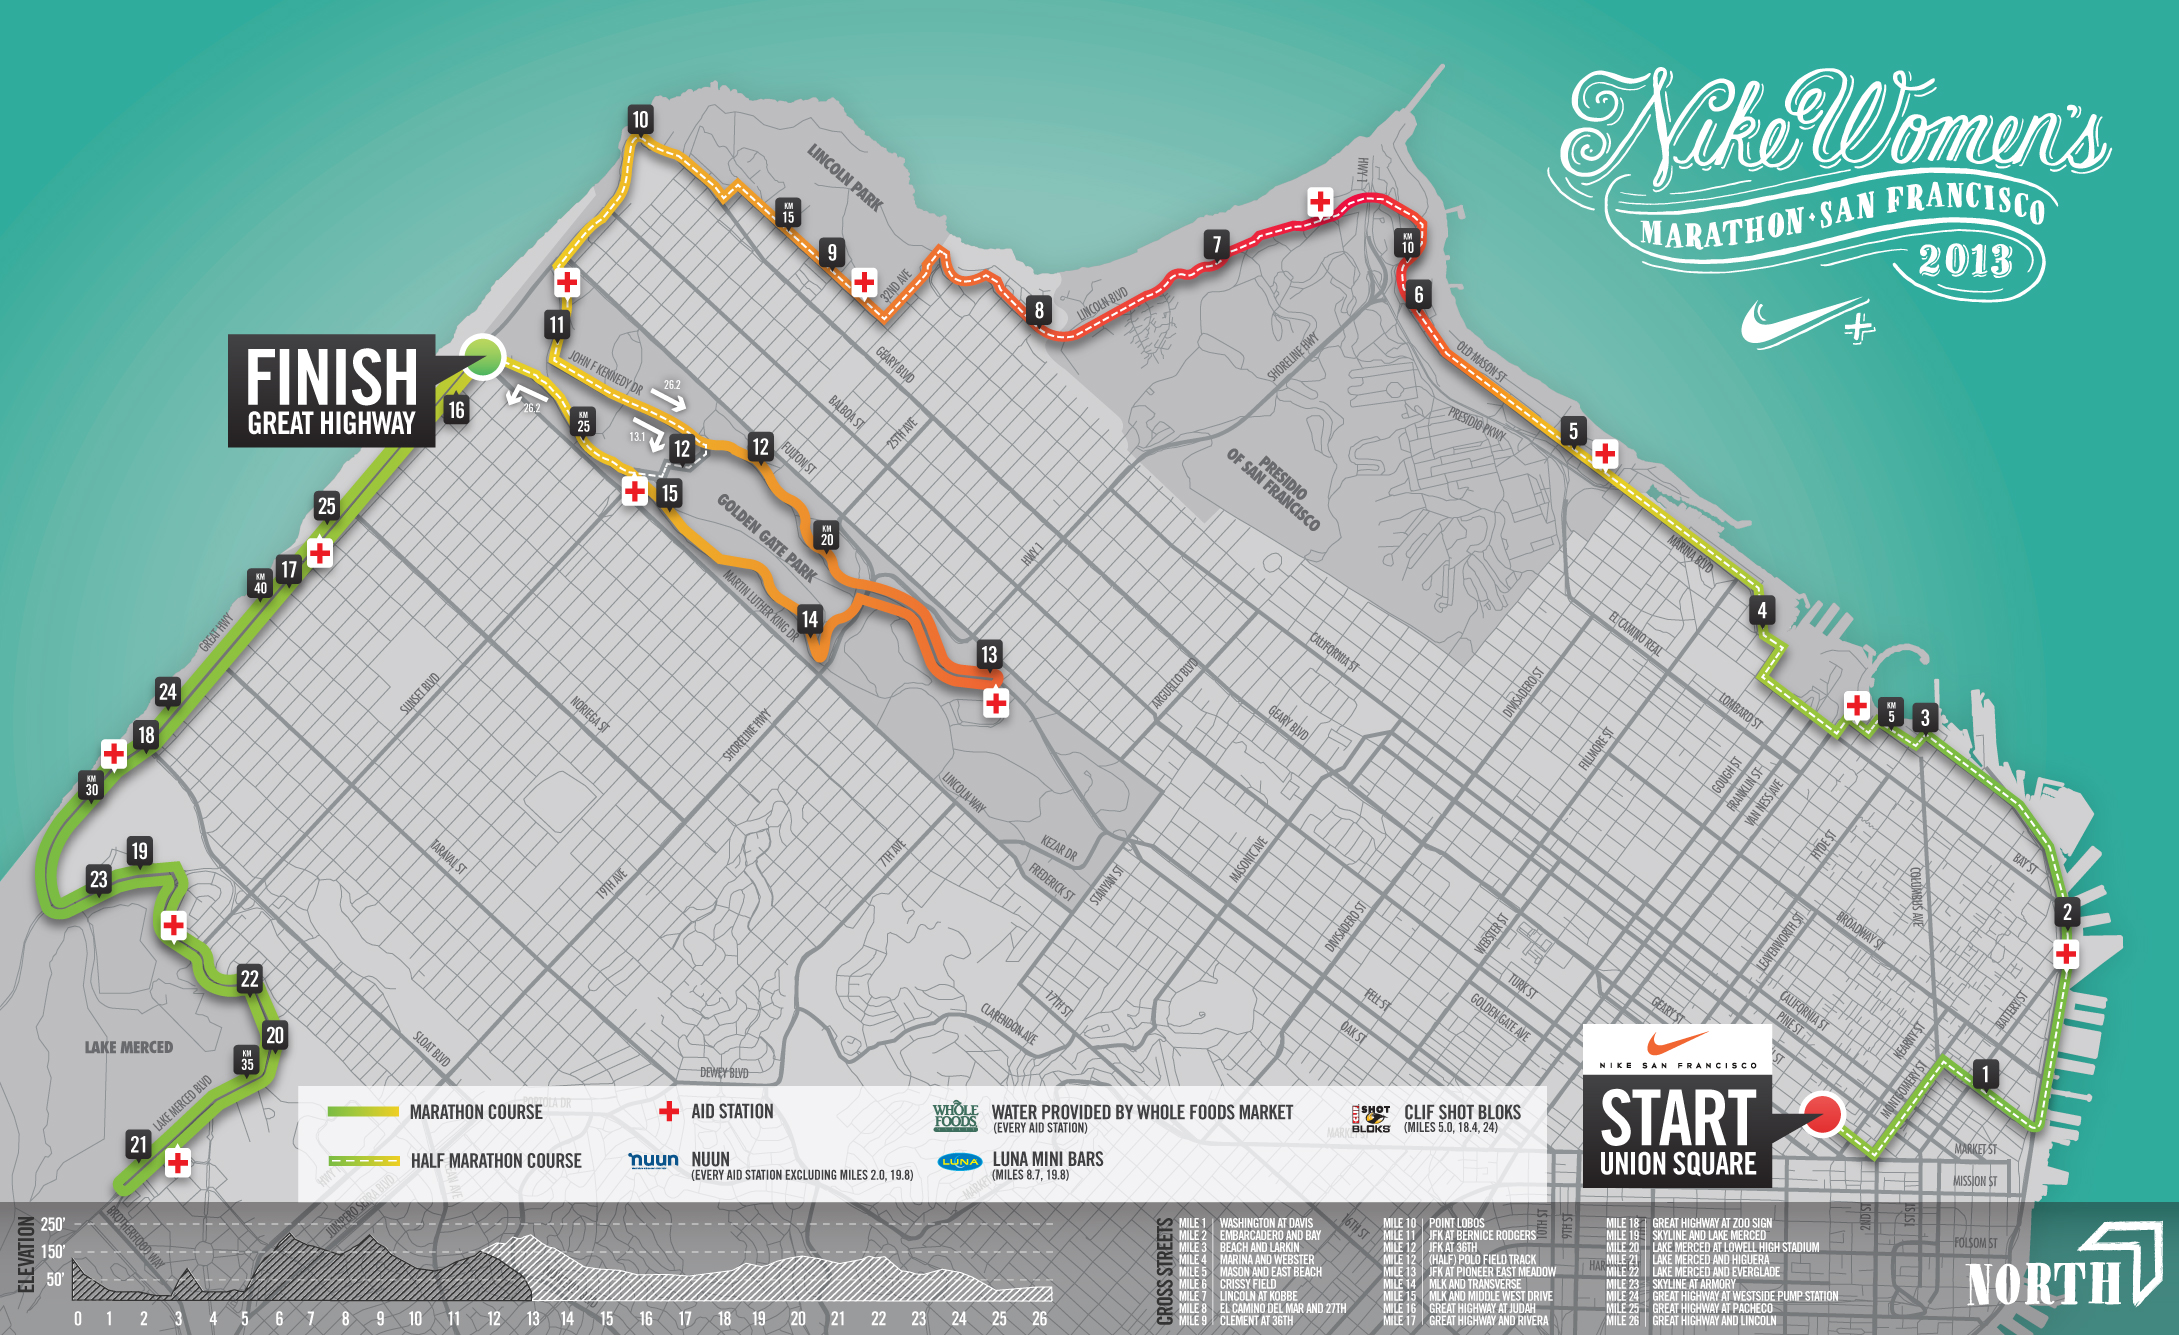 rock and roll marathon route map with Nike Womens Marathon 2013 on 1140051 besides Vancouver Sun Run Road Closures And Route Map moreover Rock N Roll San Diego Elevation Chart together with Ing New York City Marathon 2013 Review moreover Rock N Roll Las Vegas Half Marathon.